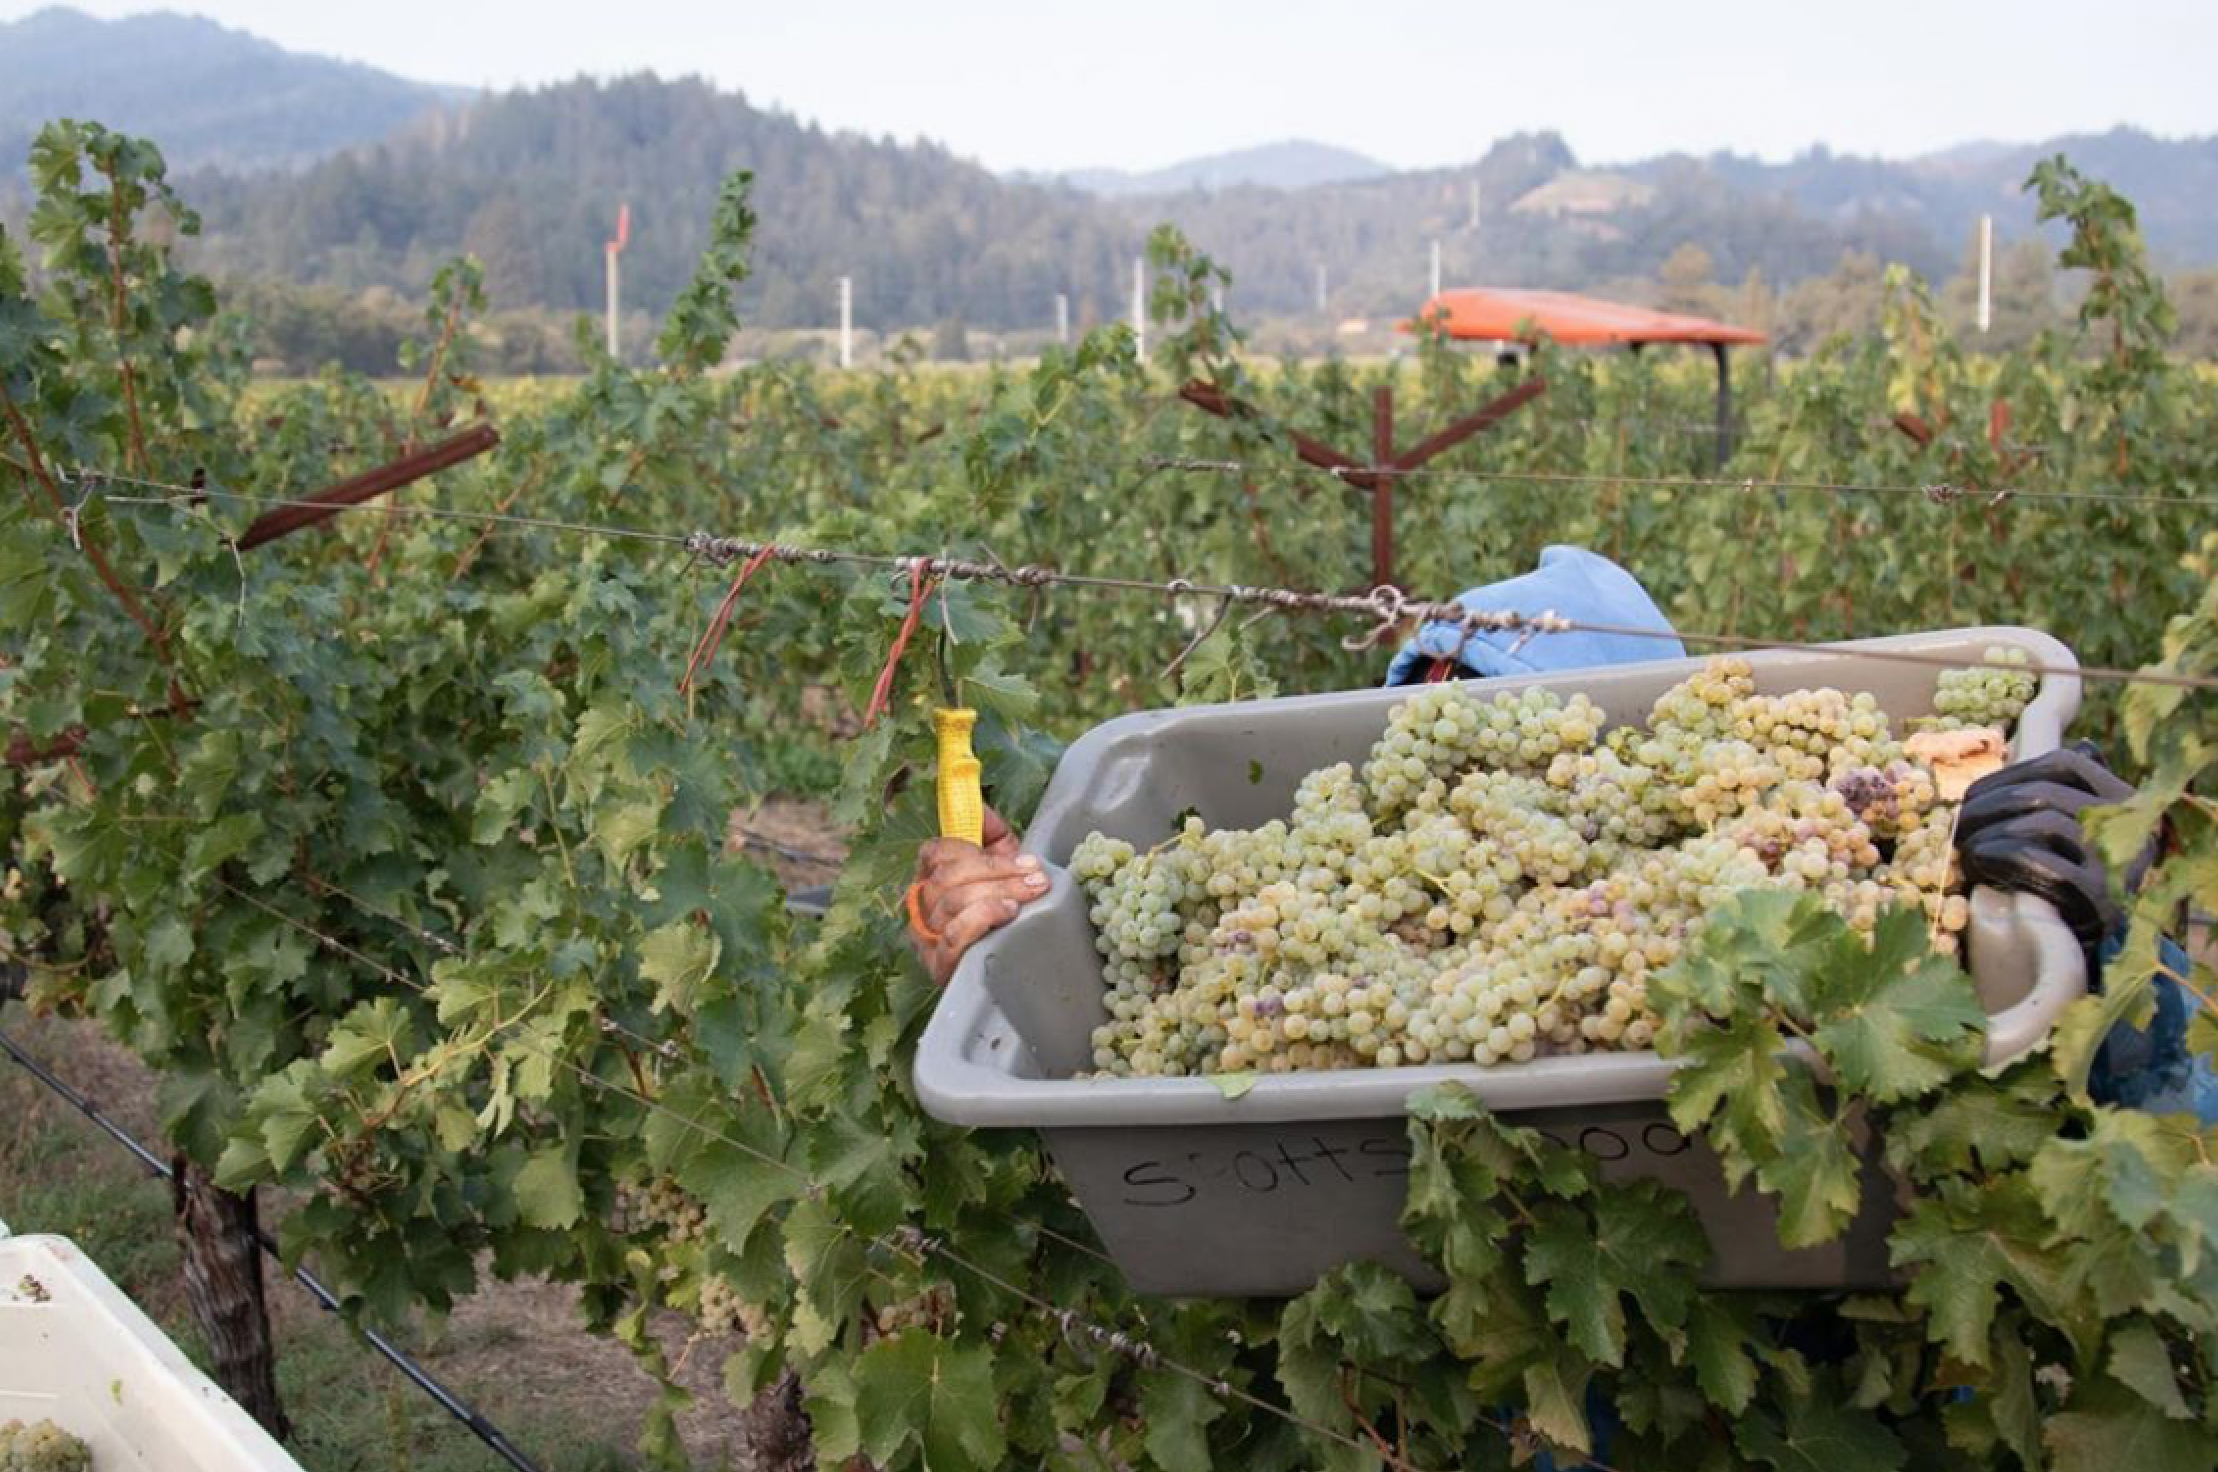 Harvest is moving forward in Napa Valley.